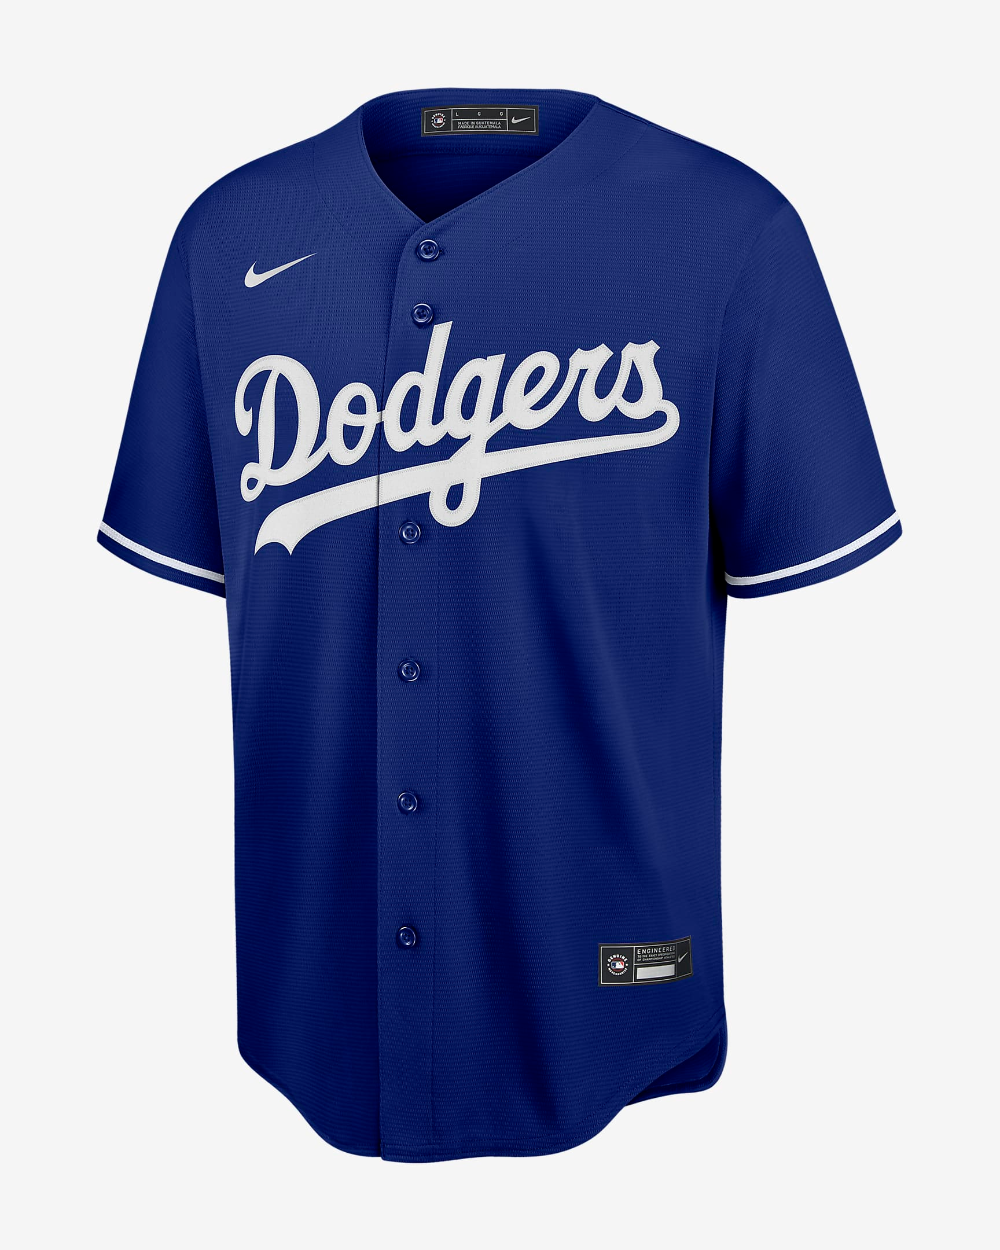 Mlb Los Angeles Dodgers Mookie Betts Men S Replica Baseball Jersey Nike Com In 2020 Dodgers Baseball Jersey Outfit Los Angeles Dodgers